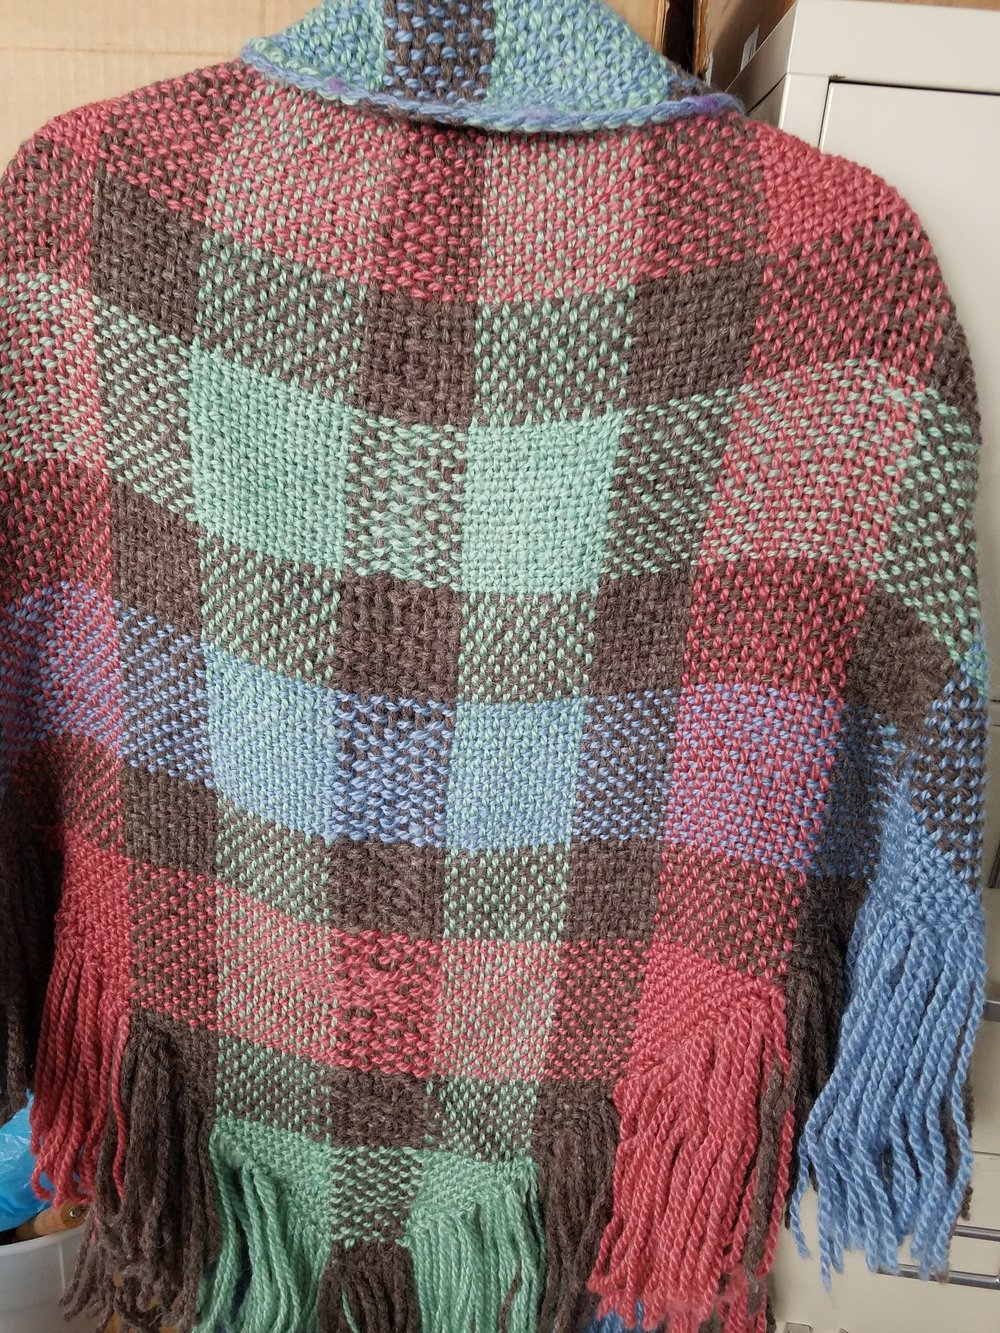 - TRI-COLOR SHAWL - made on a triangle loom using The Rosefield Bulky Liecester Longwool yarn